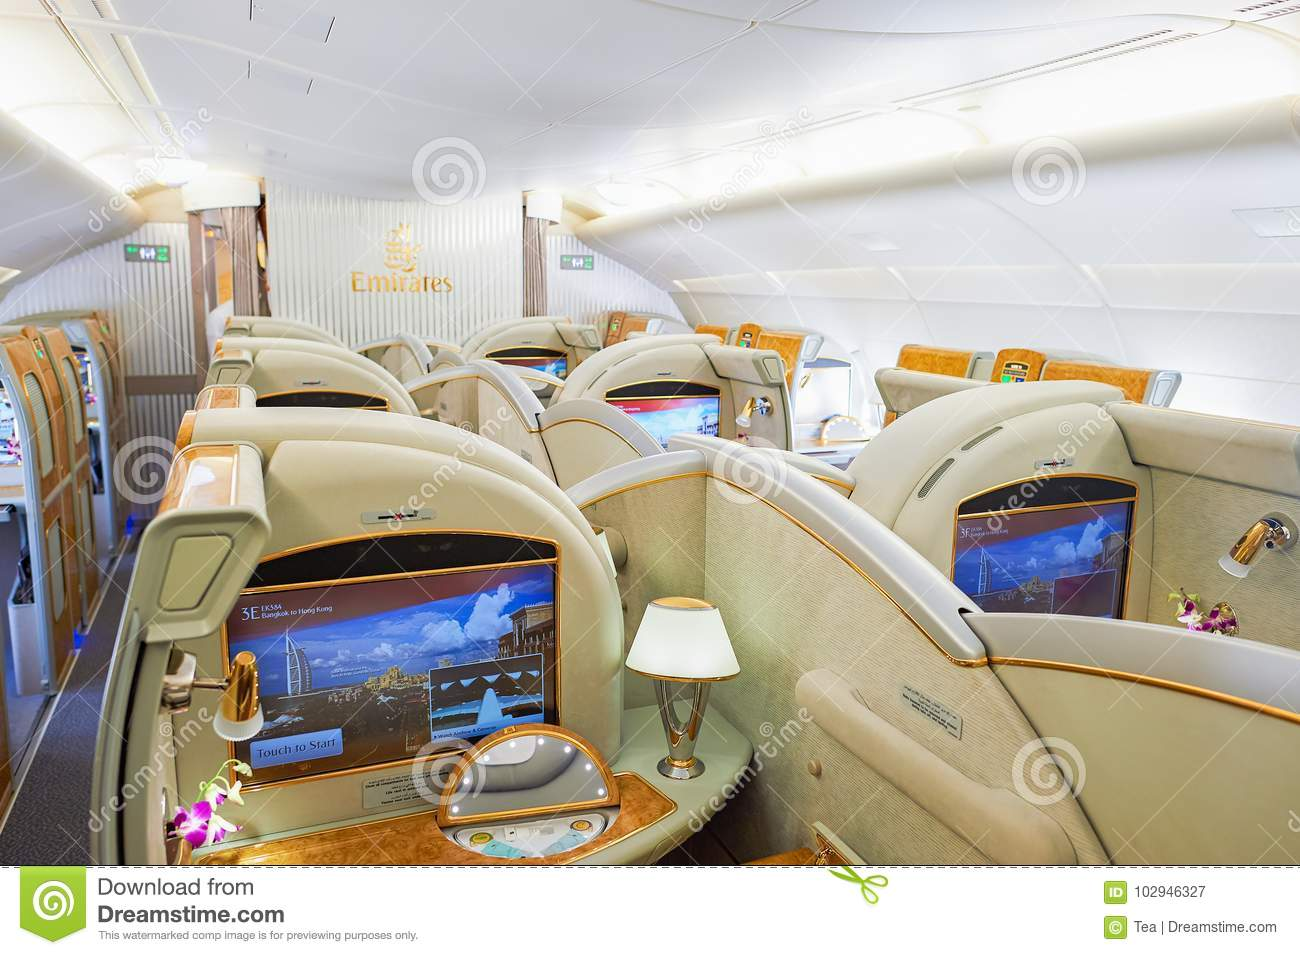 Emirates Airbus A380 Editorial Photography Image Of Cabin 102946327